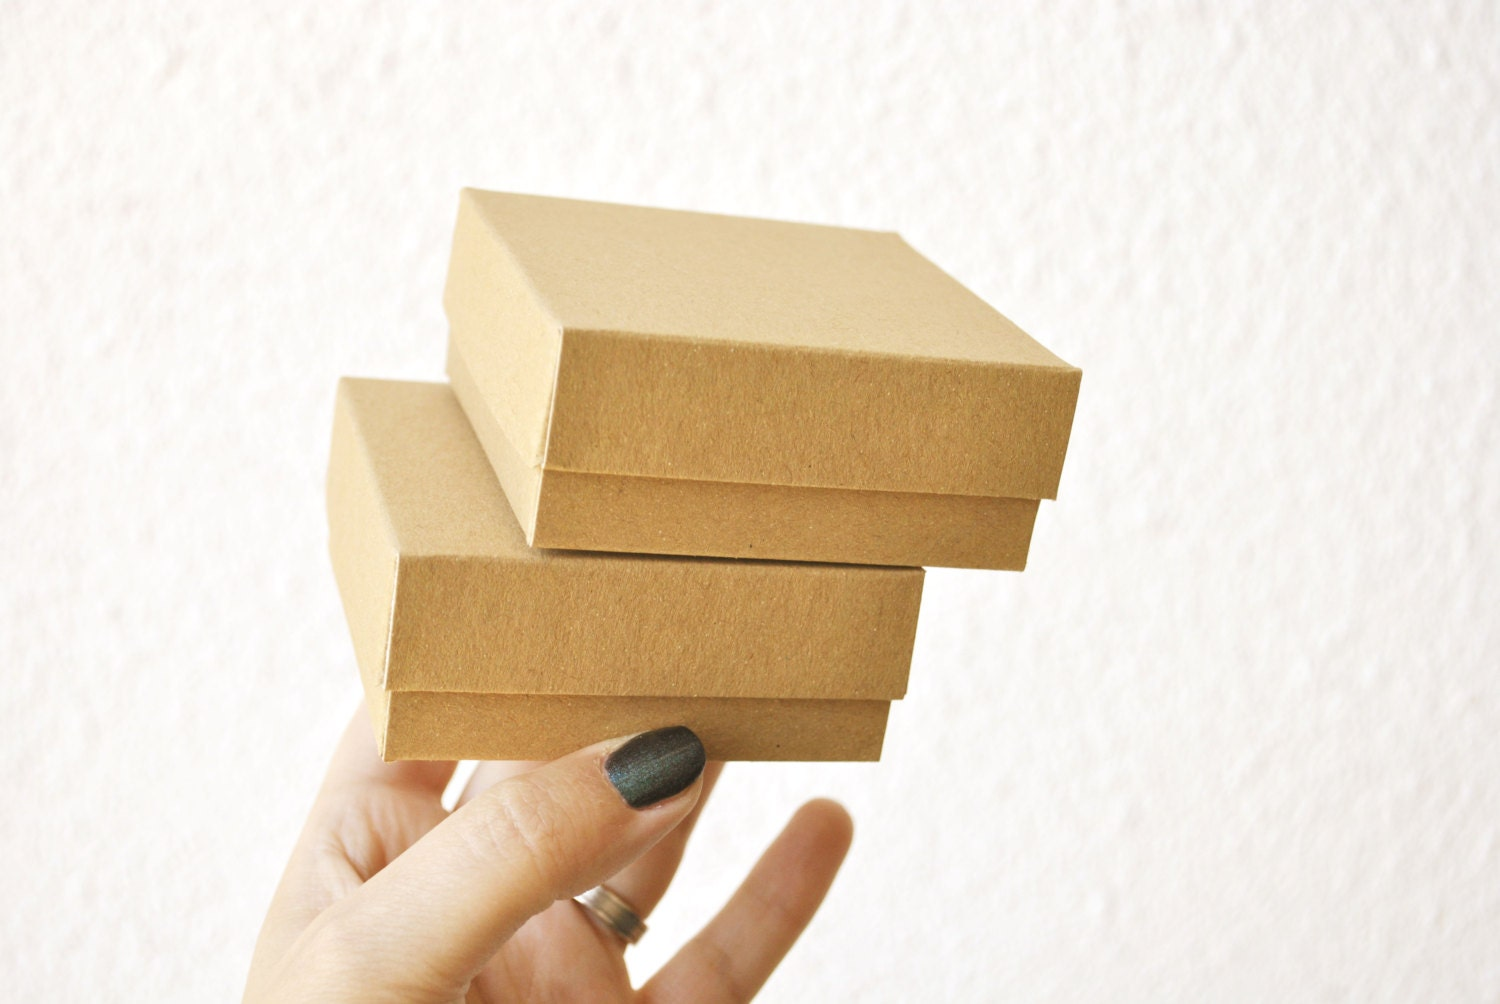 20 boxes with lid i small jewelry boxes with lid i card stock for Small cardboard jewelry boxes with lids